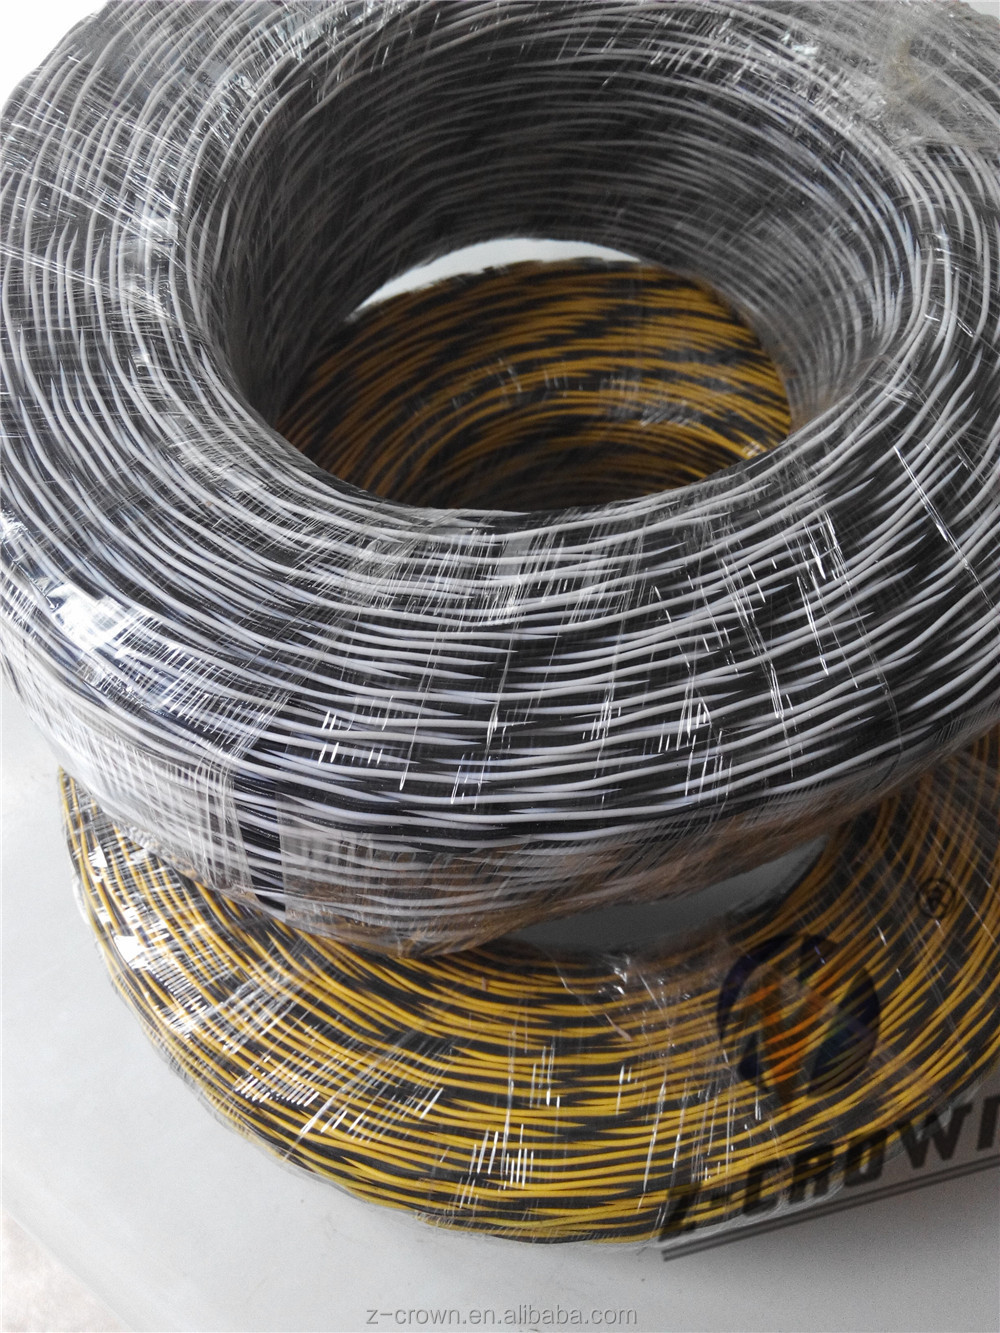 Beautiful Twisted Telephone Cable Wires Ideas - Electrical Circuit ...